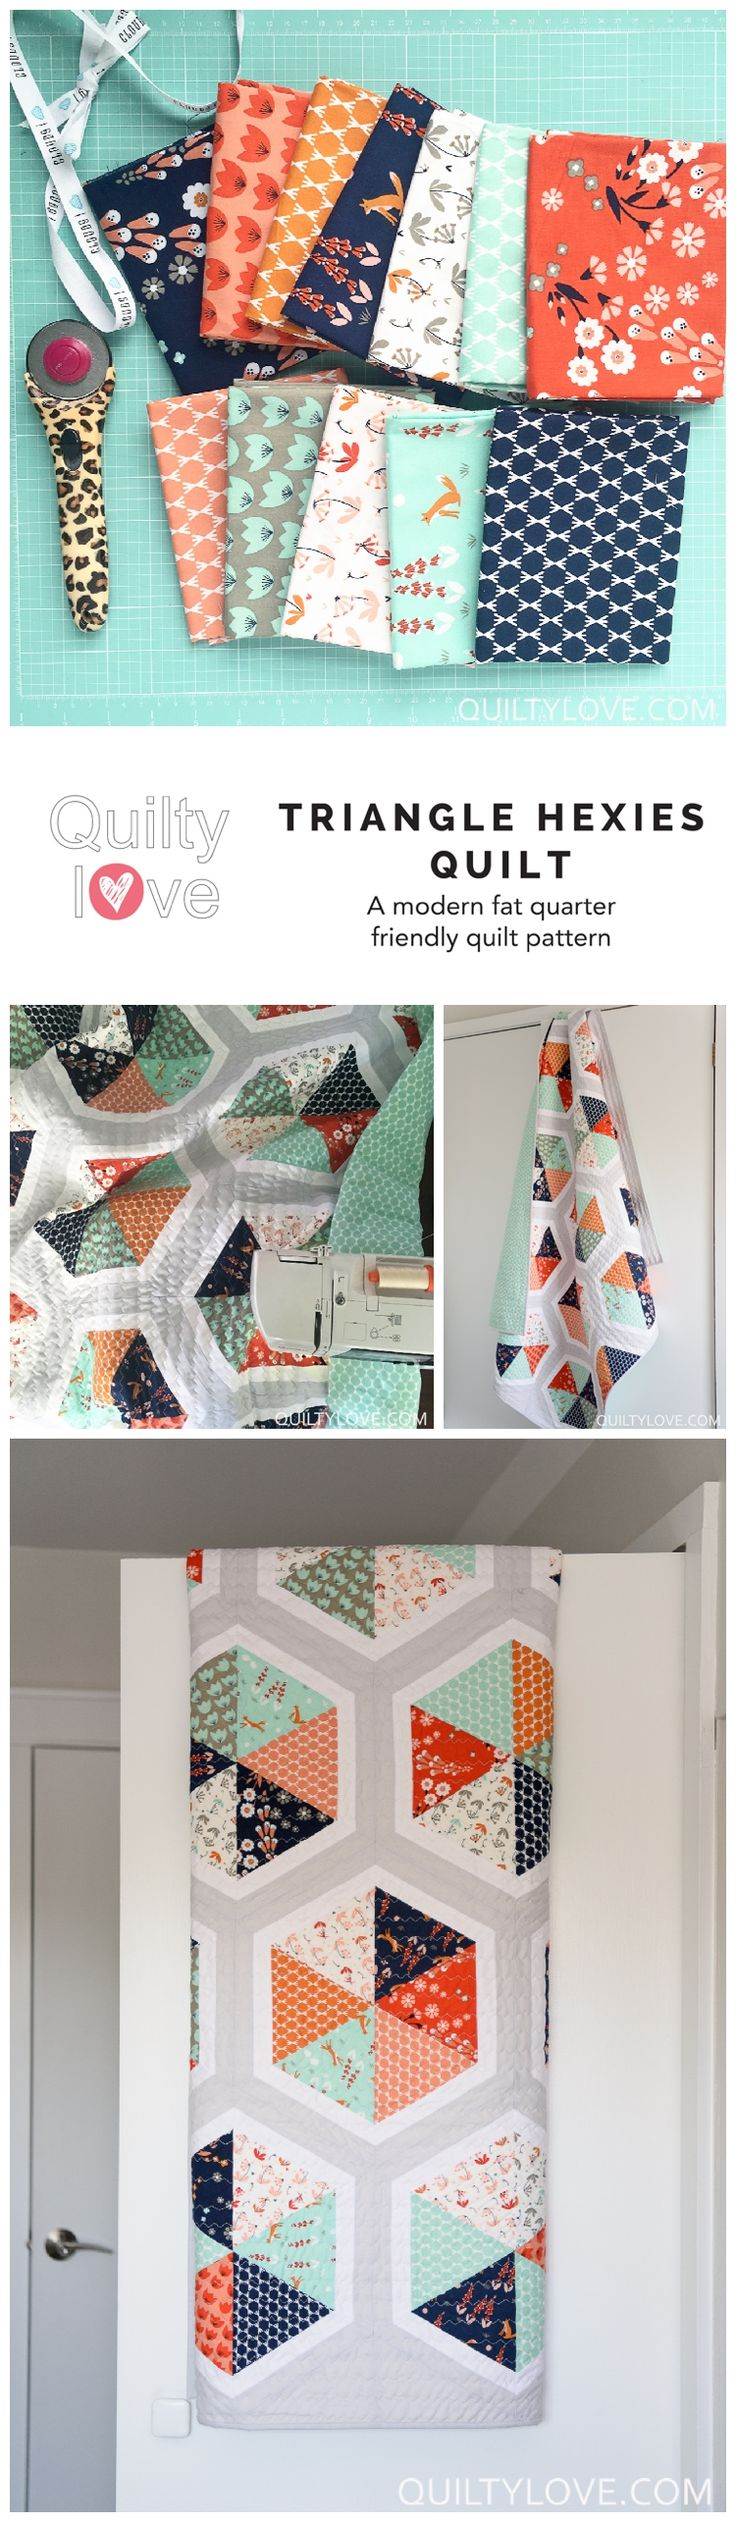 Triangle Hexies quilt by emily of quiltylove.com. Modern hexagon quilt. Fat quarter friendly quilt pattern. Cloud 9 triangle hexies quilt.